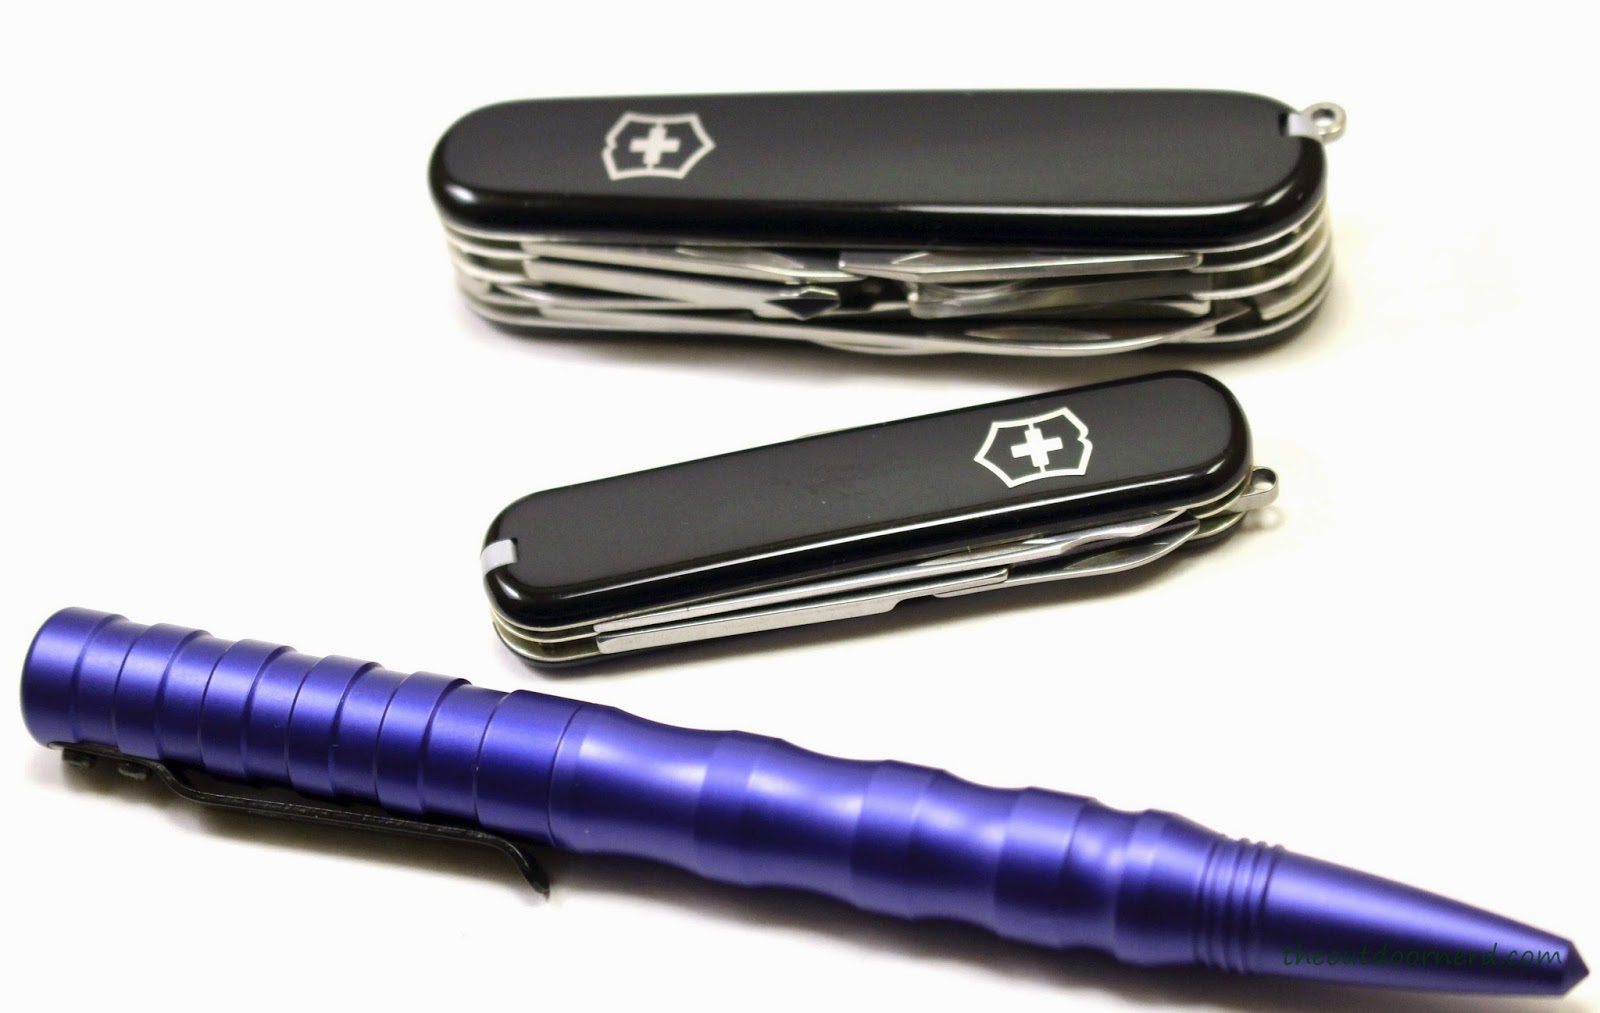 Victorinox Executive Multi-Tool Shown With Smith and Wesson Tactical Pen and Victorinox Explorer